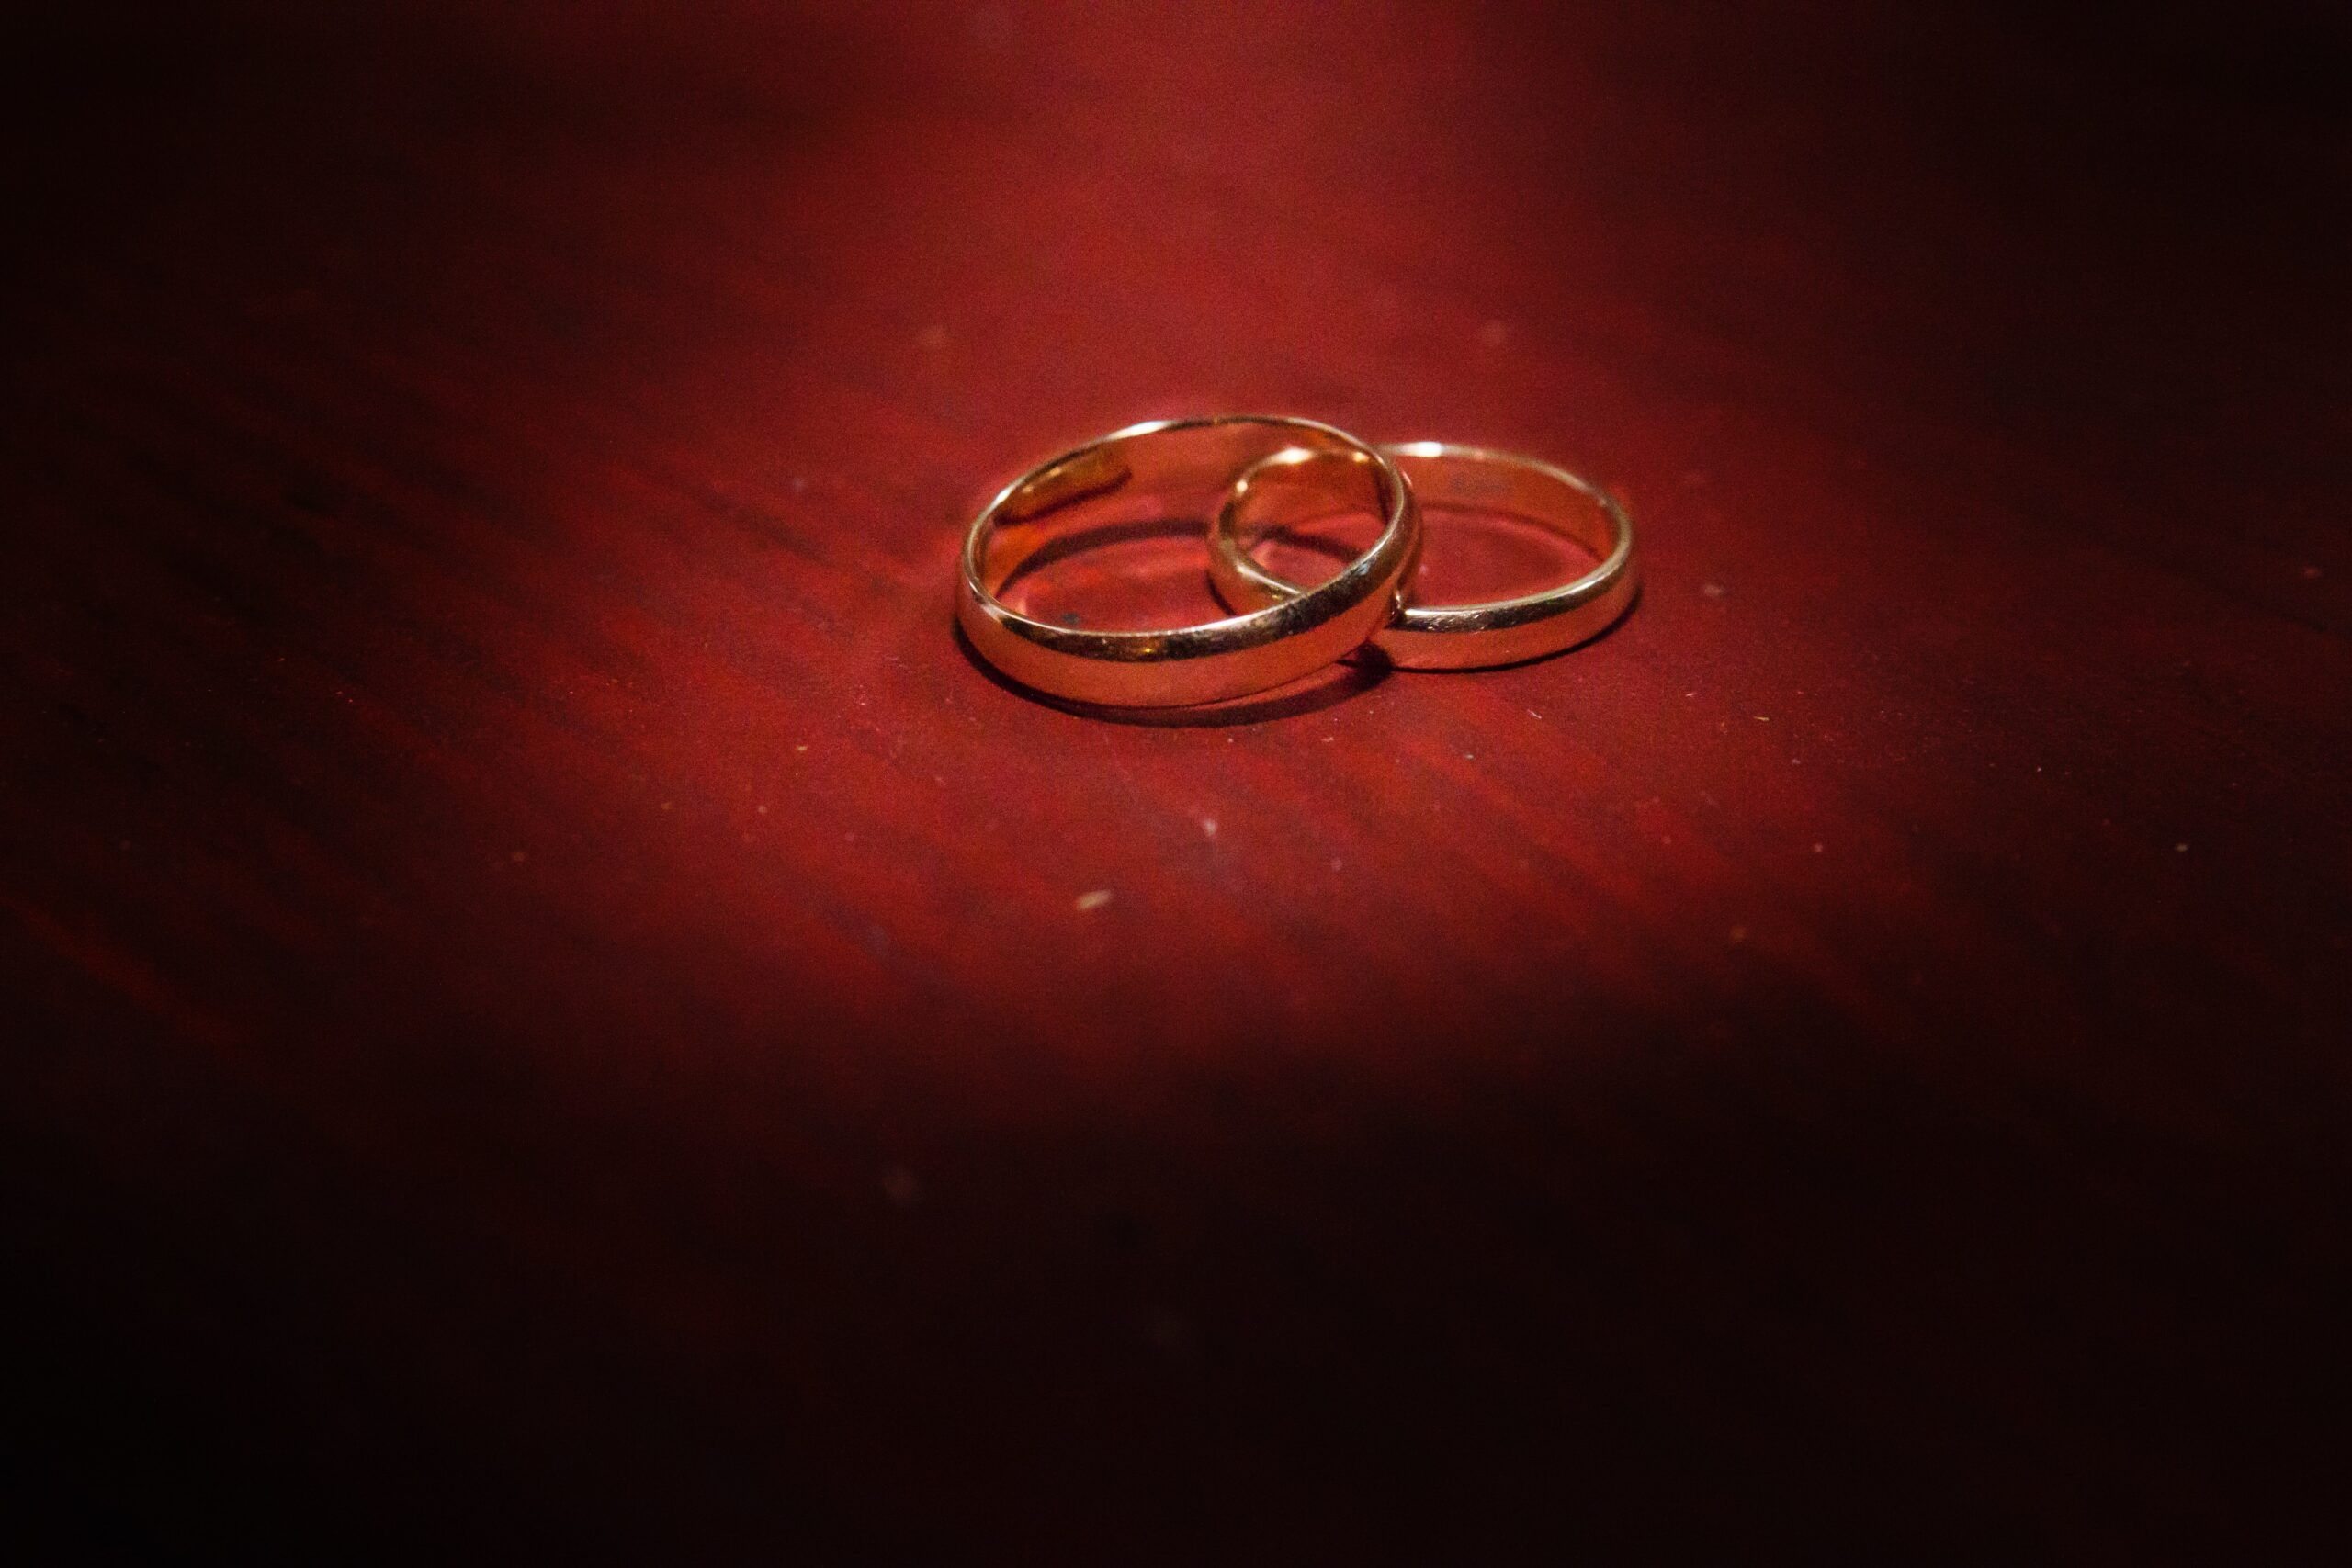 pair of gold wedding rings on red background